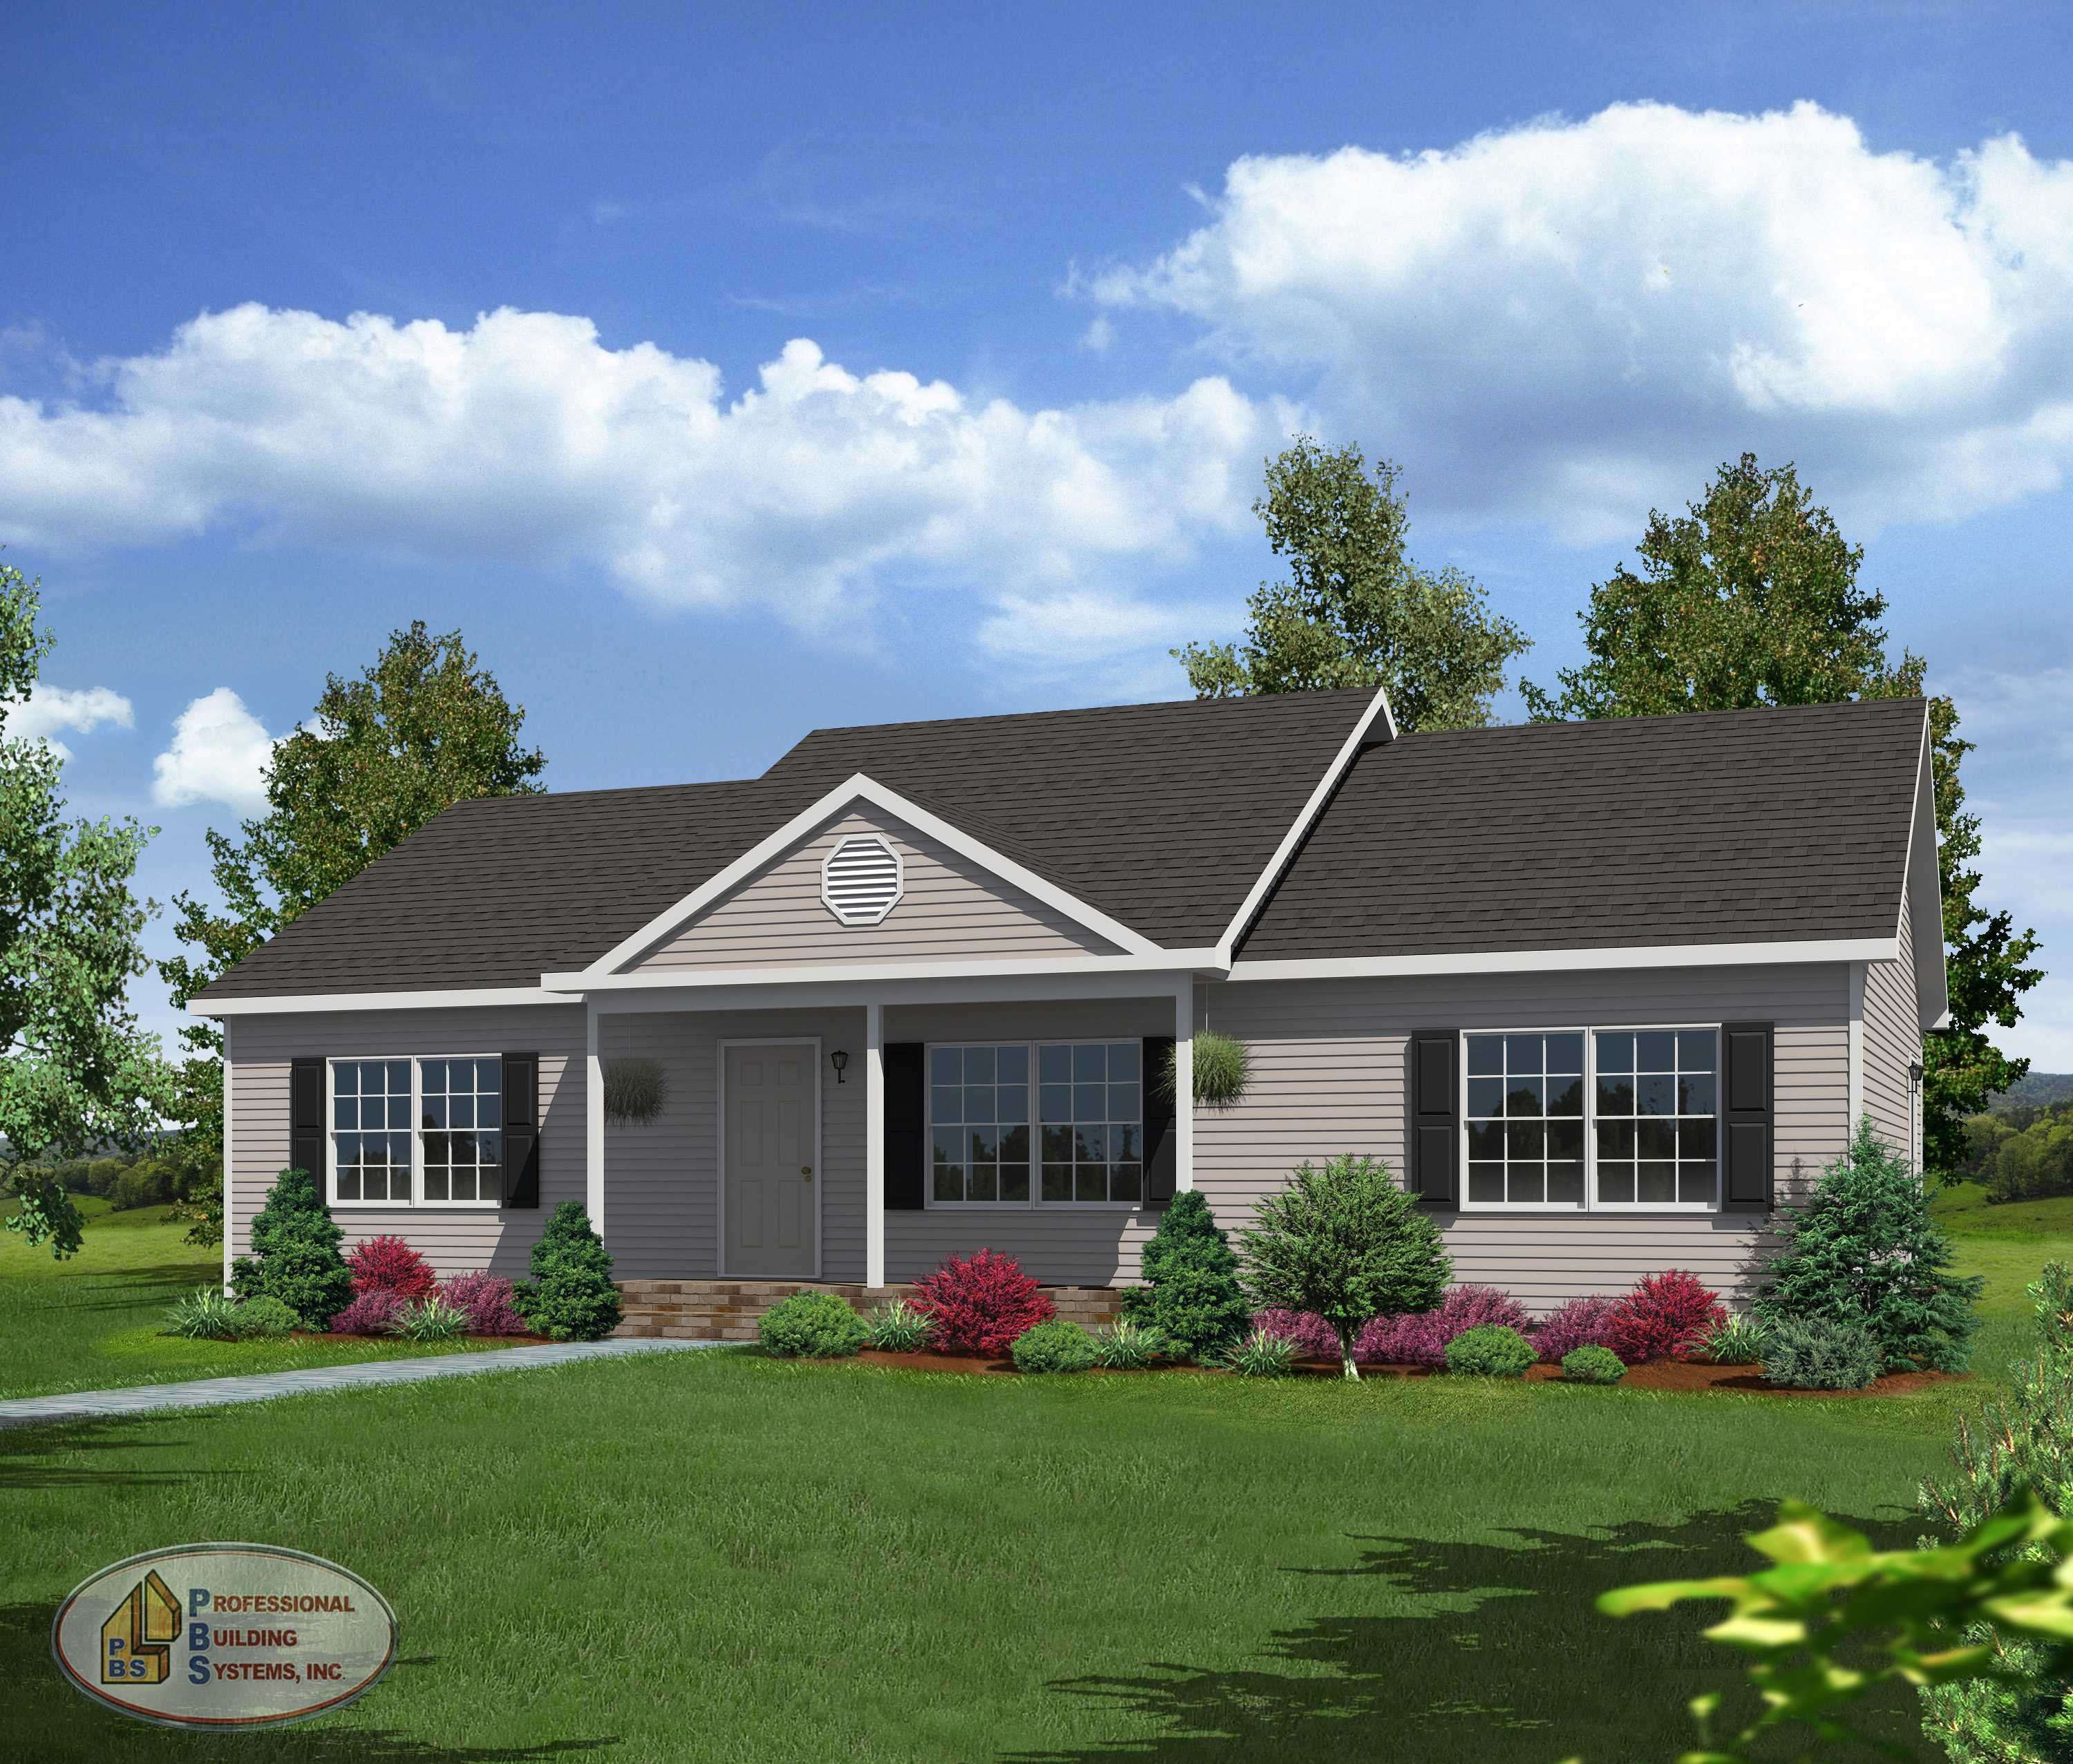 Ranch briar ridge montage mountain homes for Ranch home builders ohio